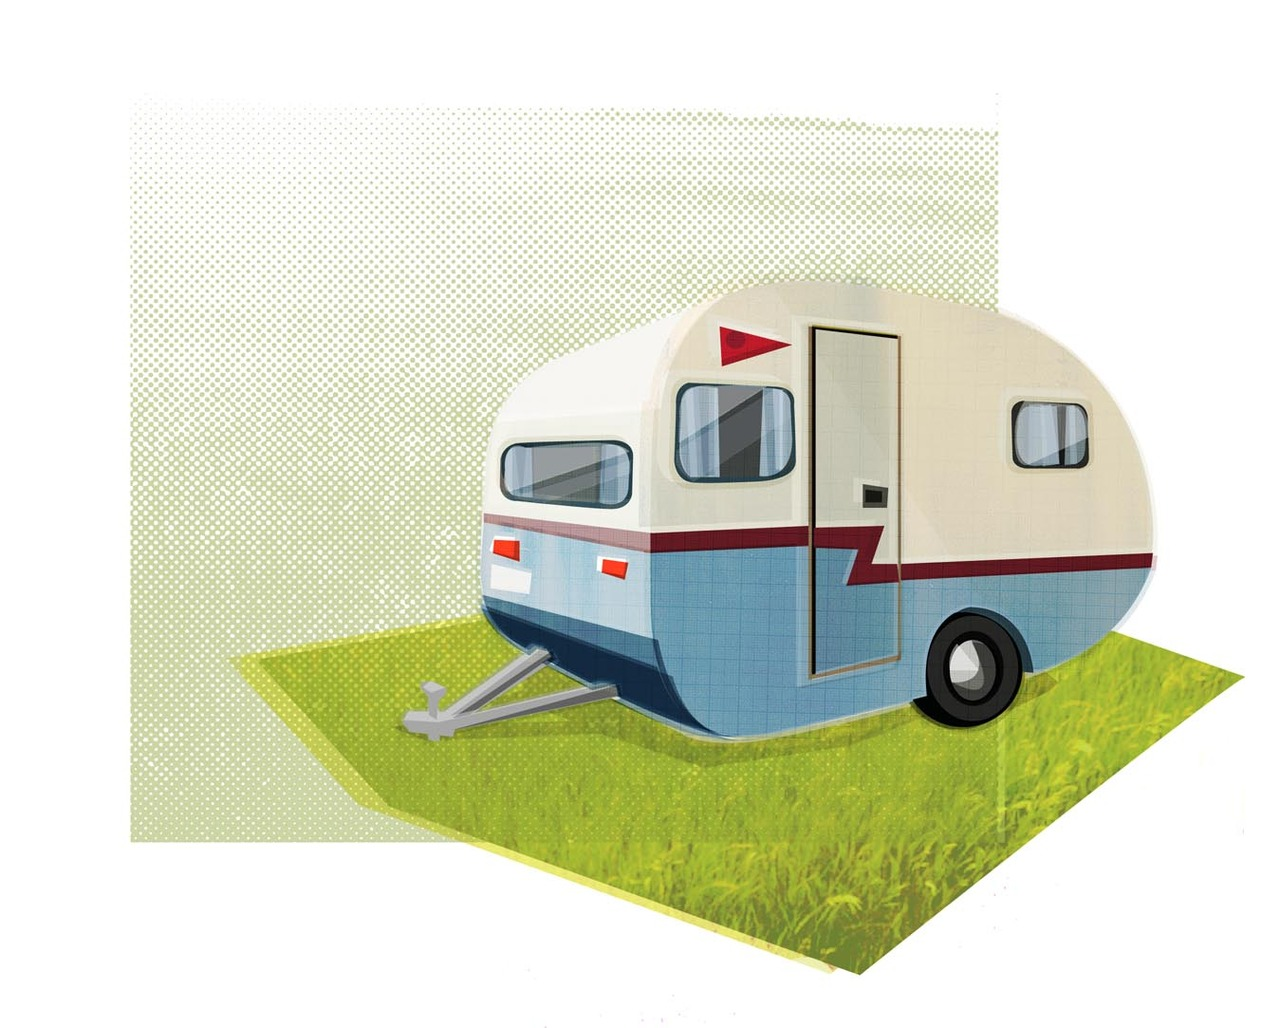 caravan illustration